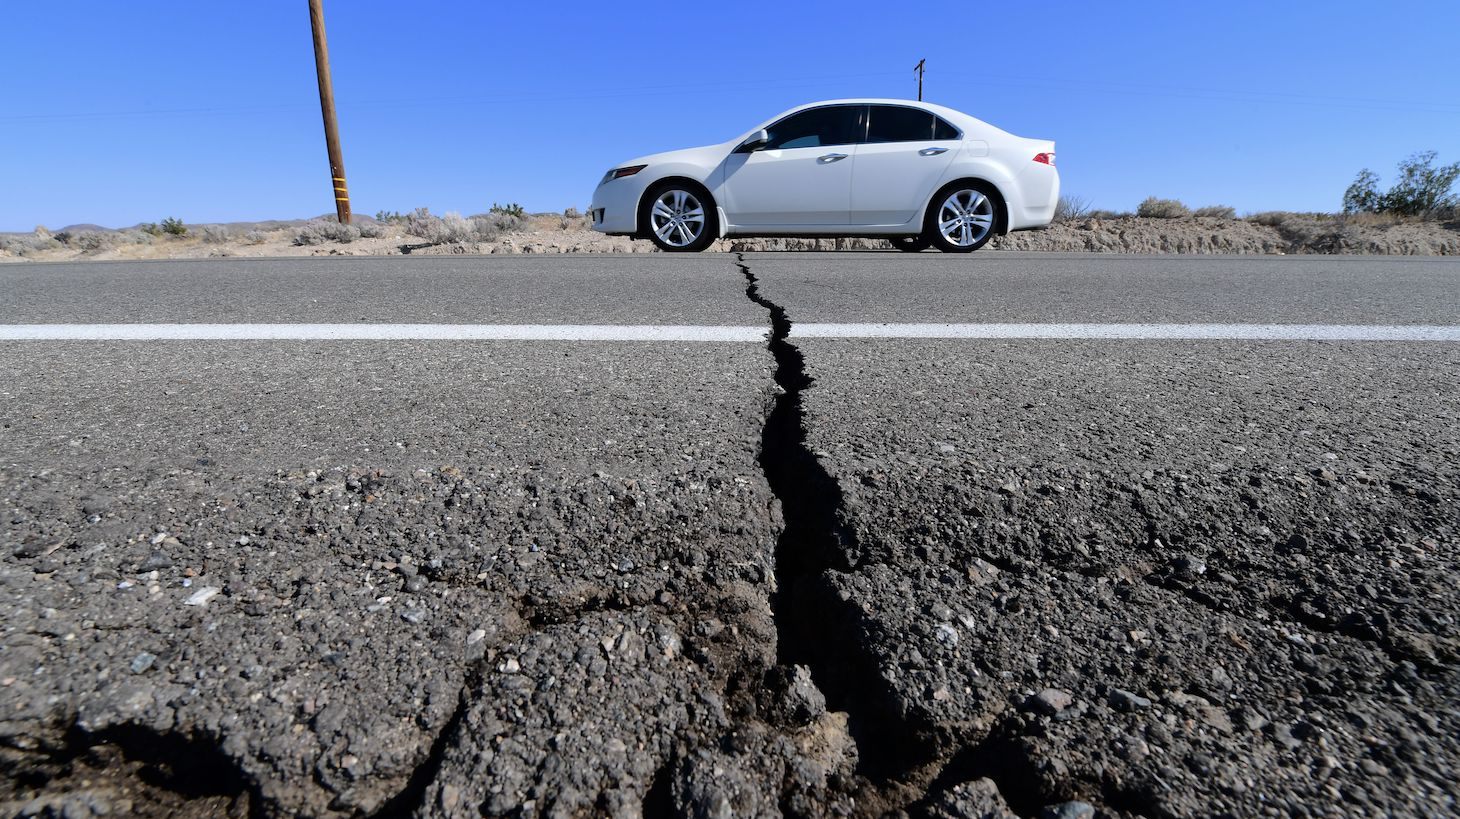 TOPSHOT - A car drives past a crack in the road on Highway 178, south of Trona, after a 6.4-magnitude earthquake hit in Ridgecrest, California, on July 4, 2019. - Southern California was rocked by a 6.4-magnitude earthquake Thursday morning, the US Geological Survey said, with authorities warning that the temblor, the largest in two decades, might not be the day's last. (Photo by FREDERIC J. BROWN / AFP) (Photo by FREDERIC J. BROWN/AFP via Getty Images)